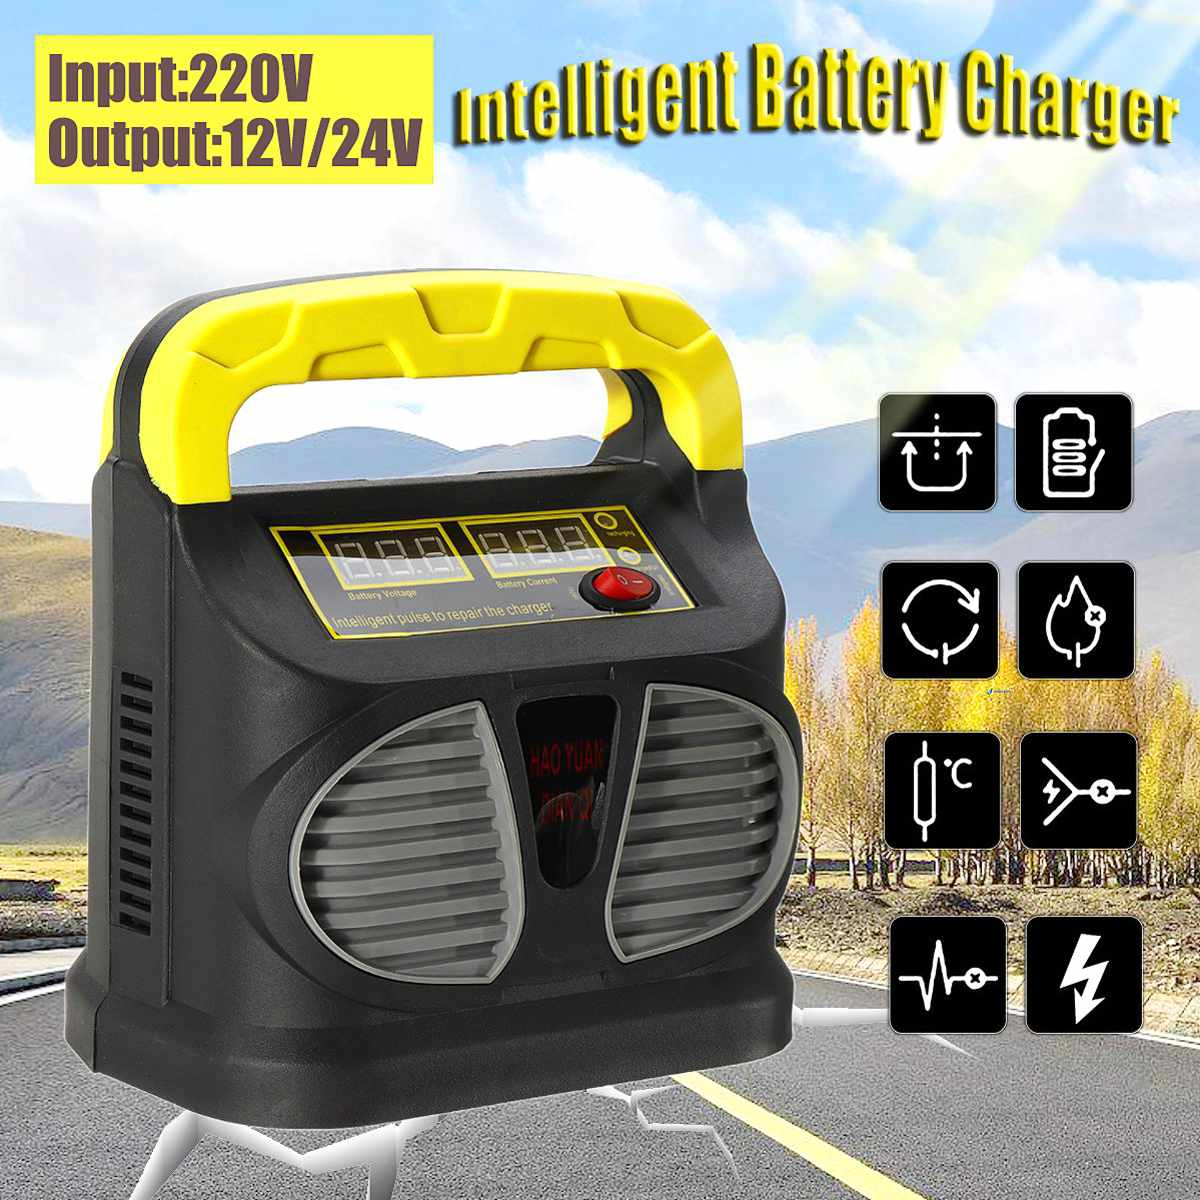 Back To Search Resultshome Intellective 220v Input 12/24v Output Portable Automatic Car Battery Charger Intelligent Fast Power Charging Lead Acid Digital Lcd Display Hot Sale 50-70% OFF